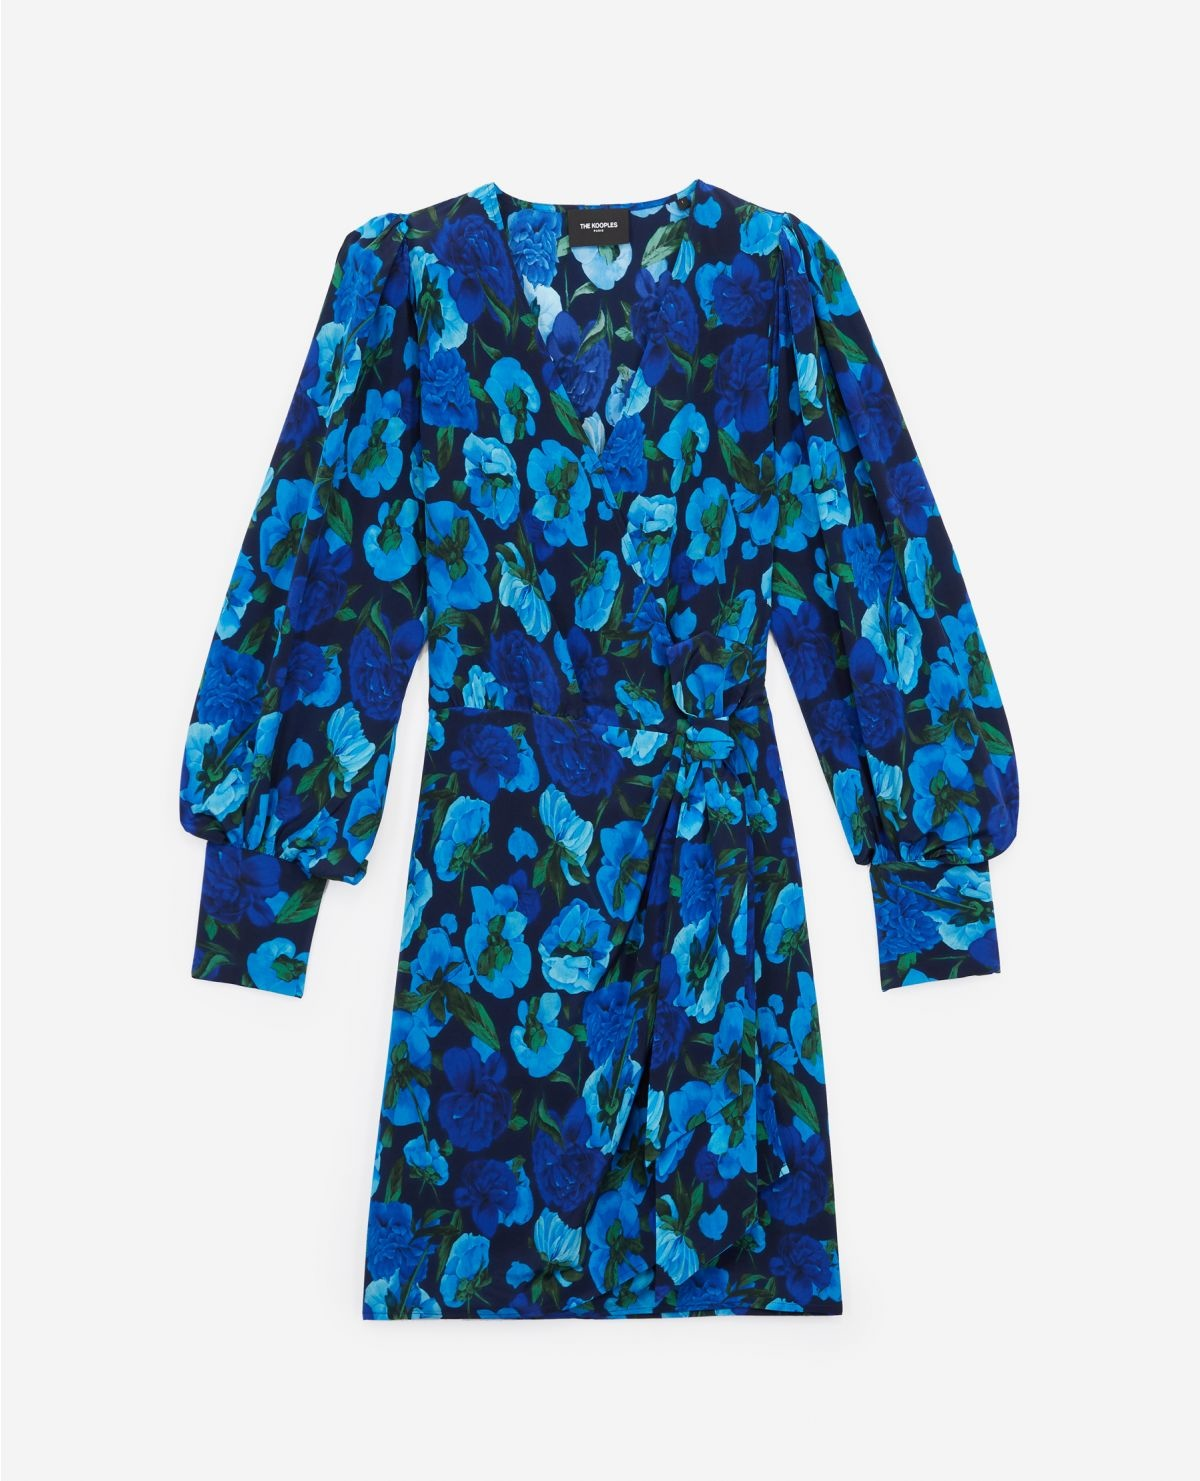 THE KOOPLES robe courte portefeuille-1